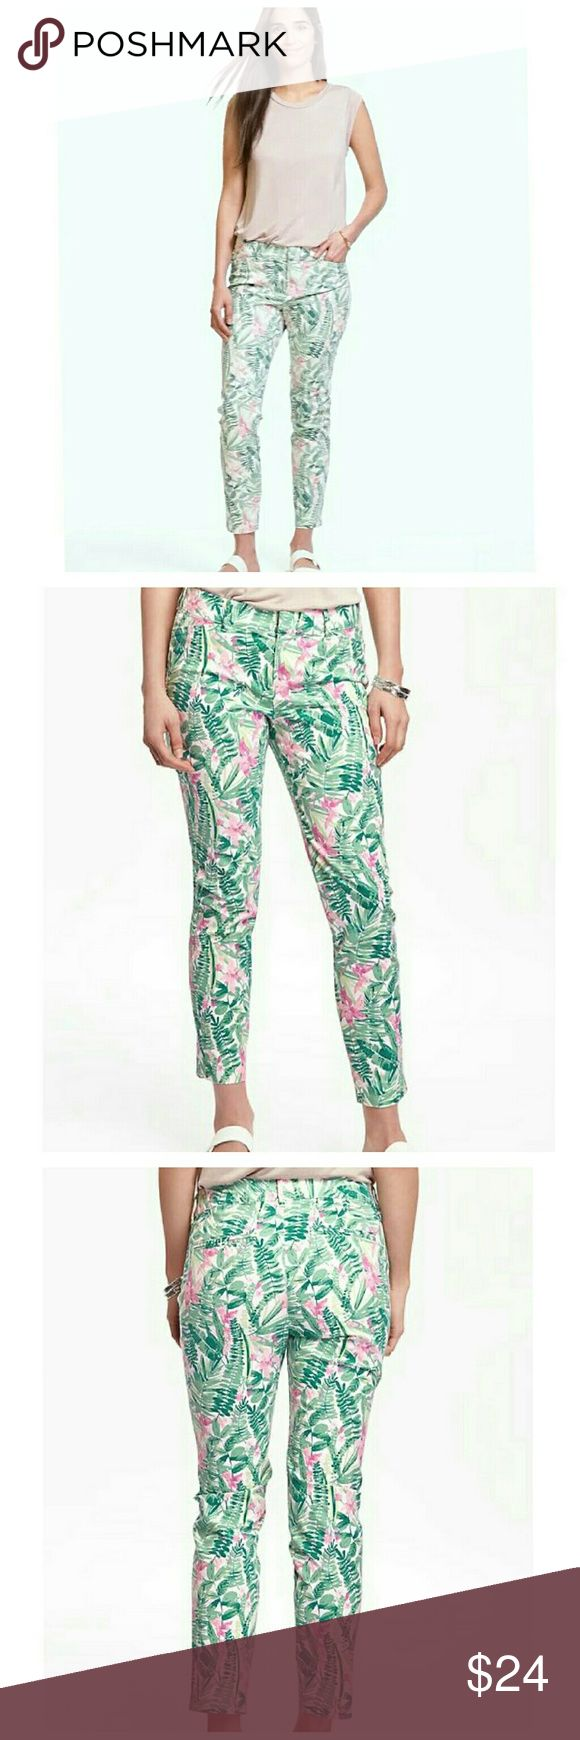 Old Navy Tropical Pixie Chino Pants Pants feature:  Tropical print  Double hook-and-bar closure, with interior button closure Zip fly Slit pockets in front faux welt pockets in back Smooth, medium-weight twill with added stretch Sits just above the waist Snug fit through hip and thigh Skinny leg hits at ankle 97% cotton, 3% spandex Machine wash Old Navy Pants